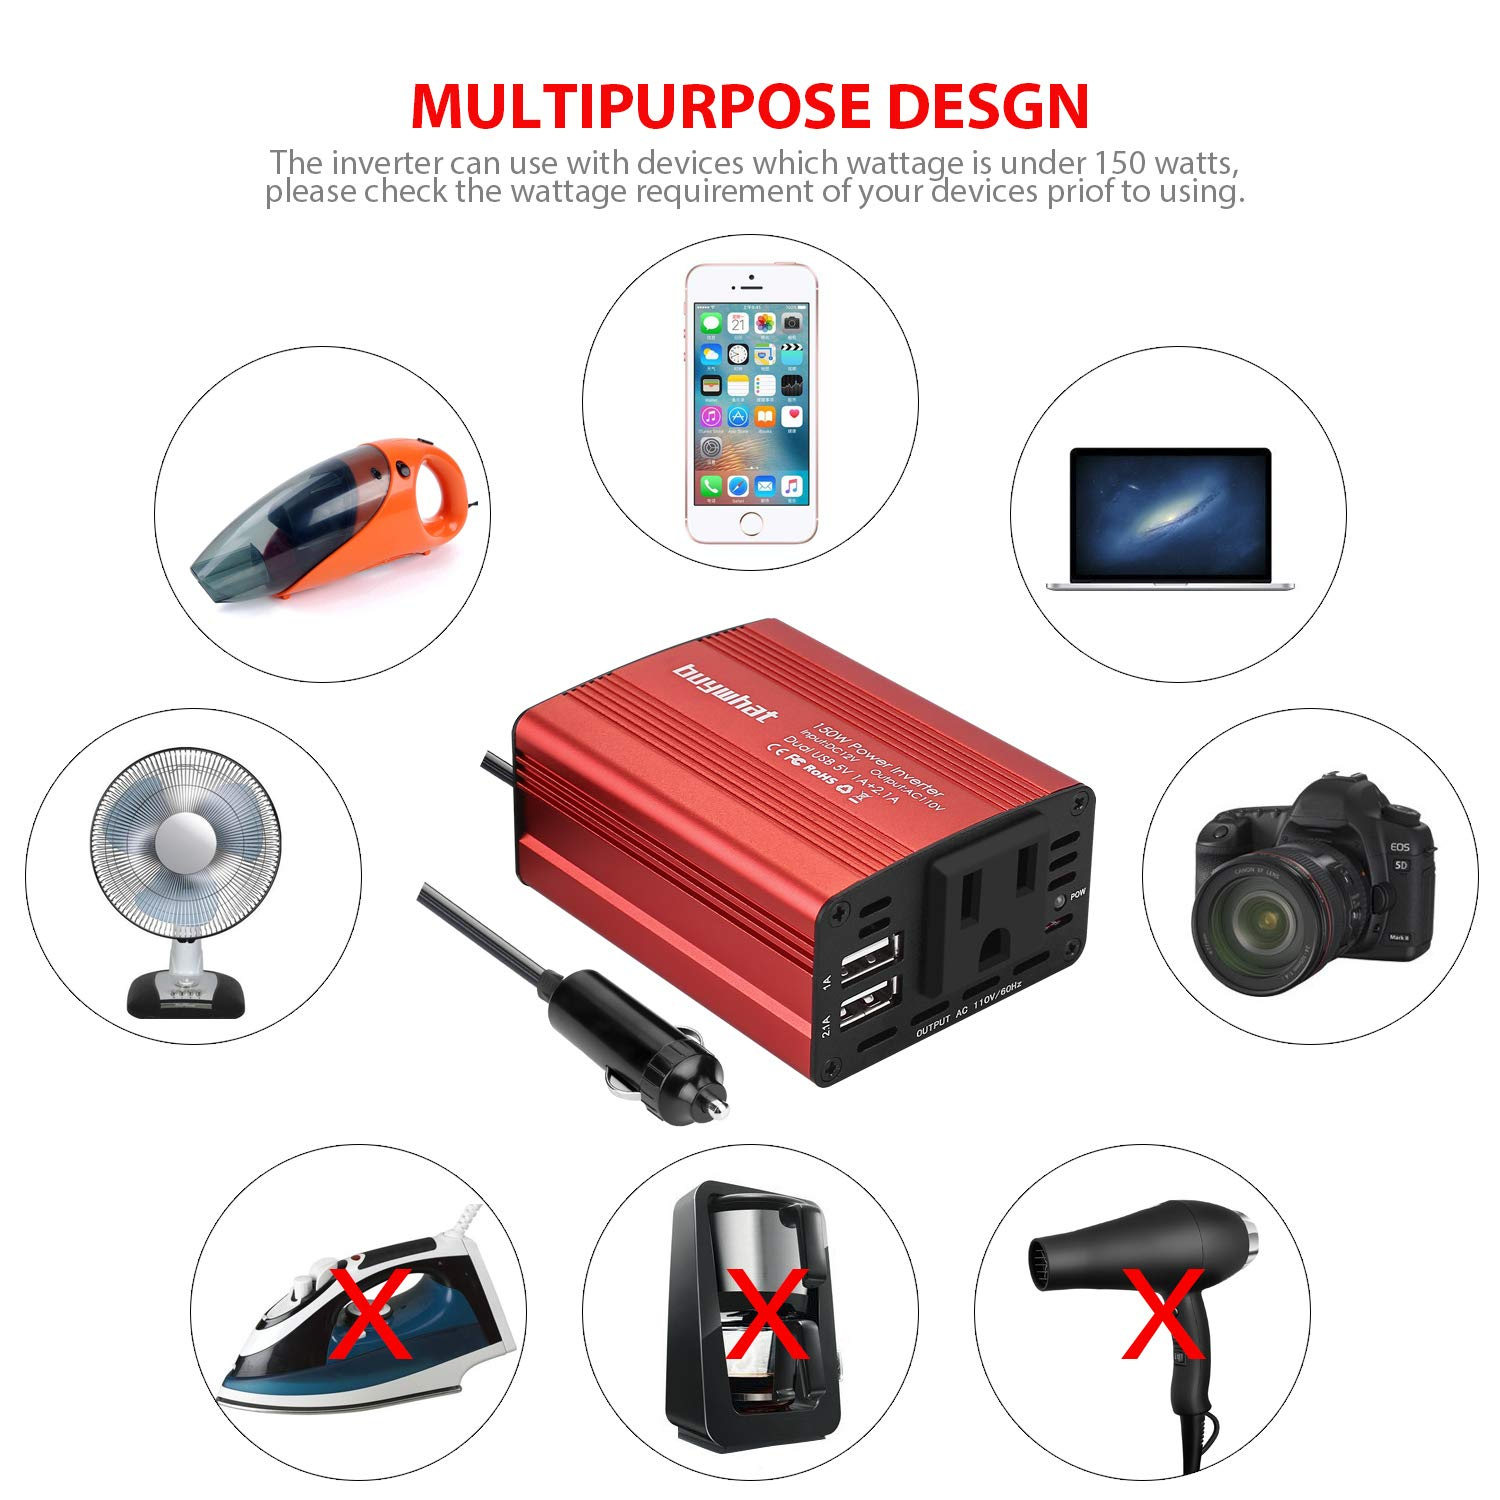 Buy What BW-150 150W Car Power Inverter DC 12V to 110V AC Outlet Converter 3.1A Dual USB Car Charger Adapter(Red) by Buywhat (Image #3)